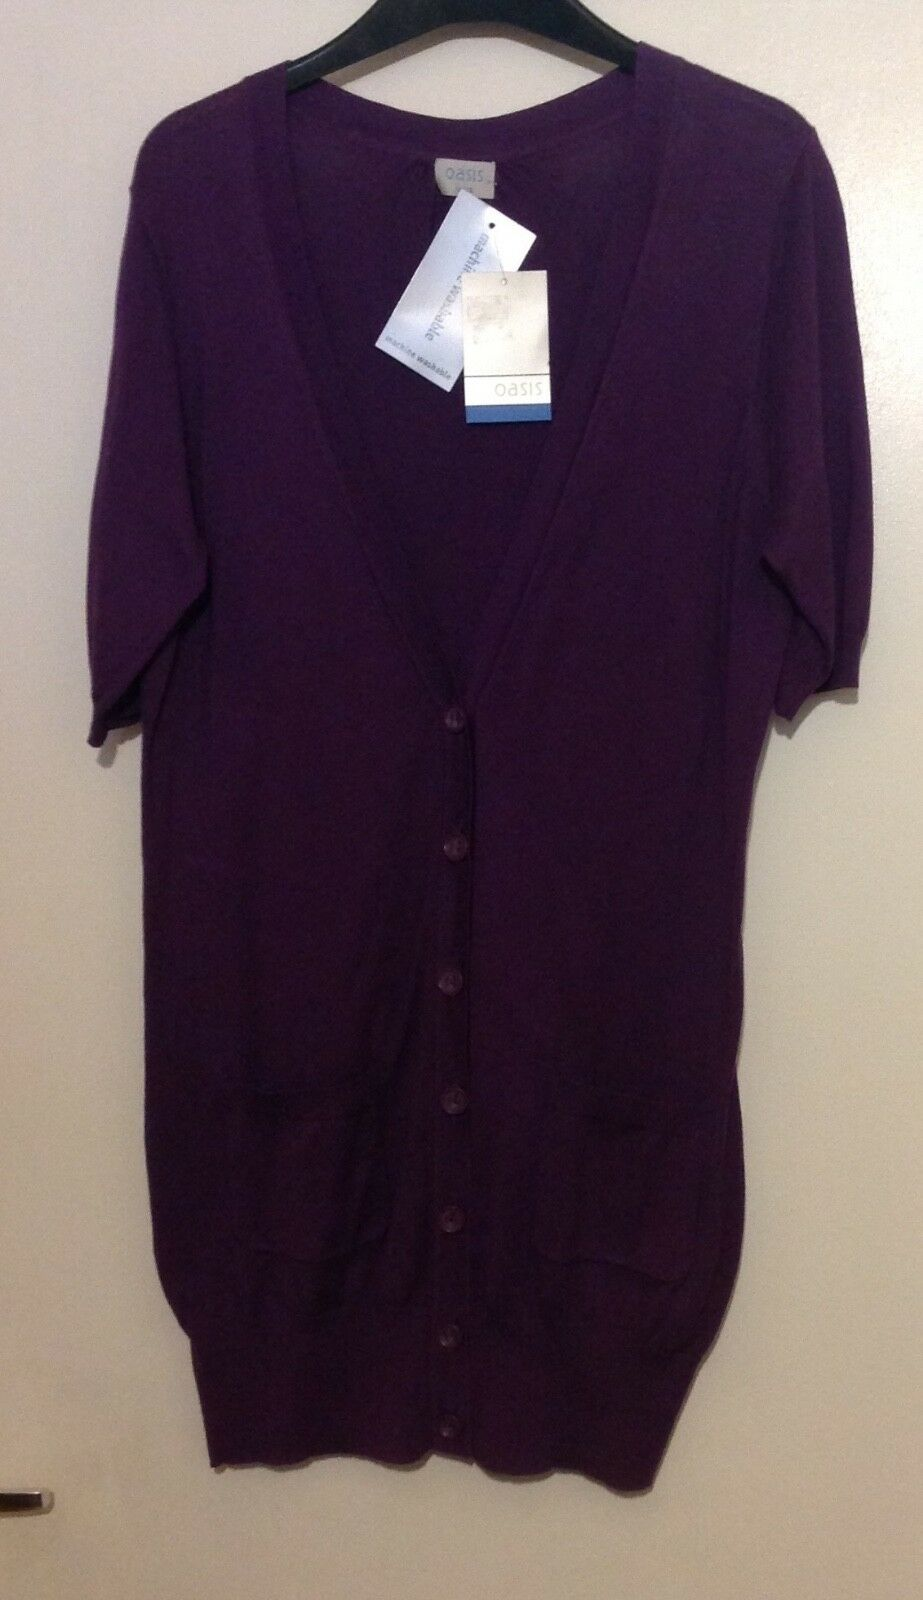 OASIS Purple Cardigan Size 12 Brand New With Tags 100% Cotton Button Front